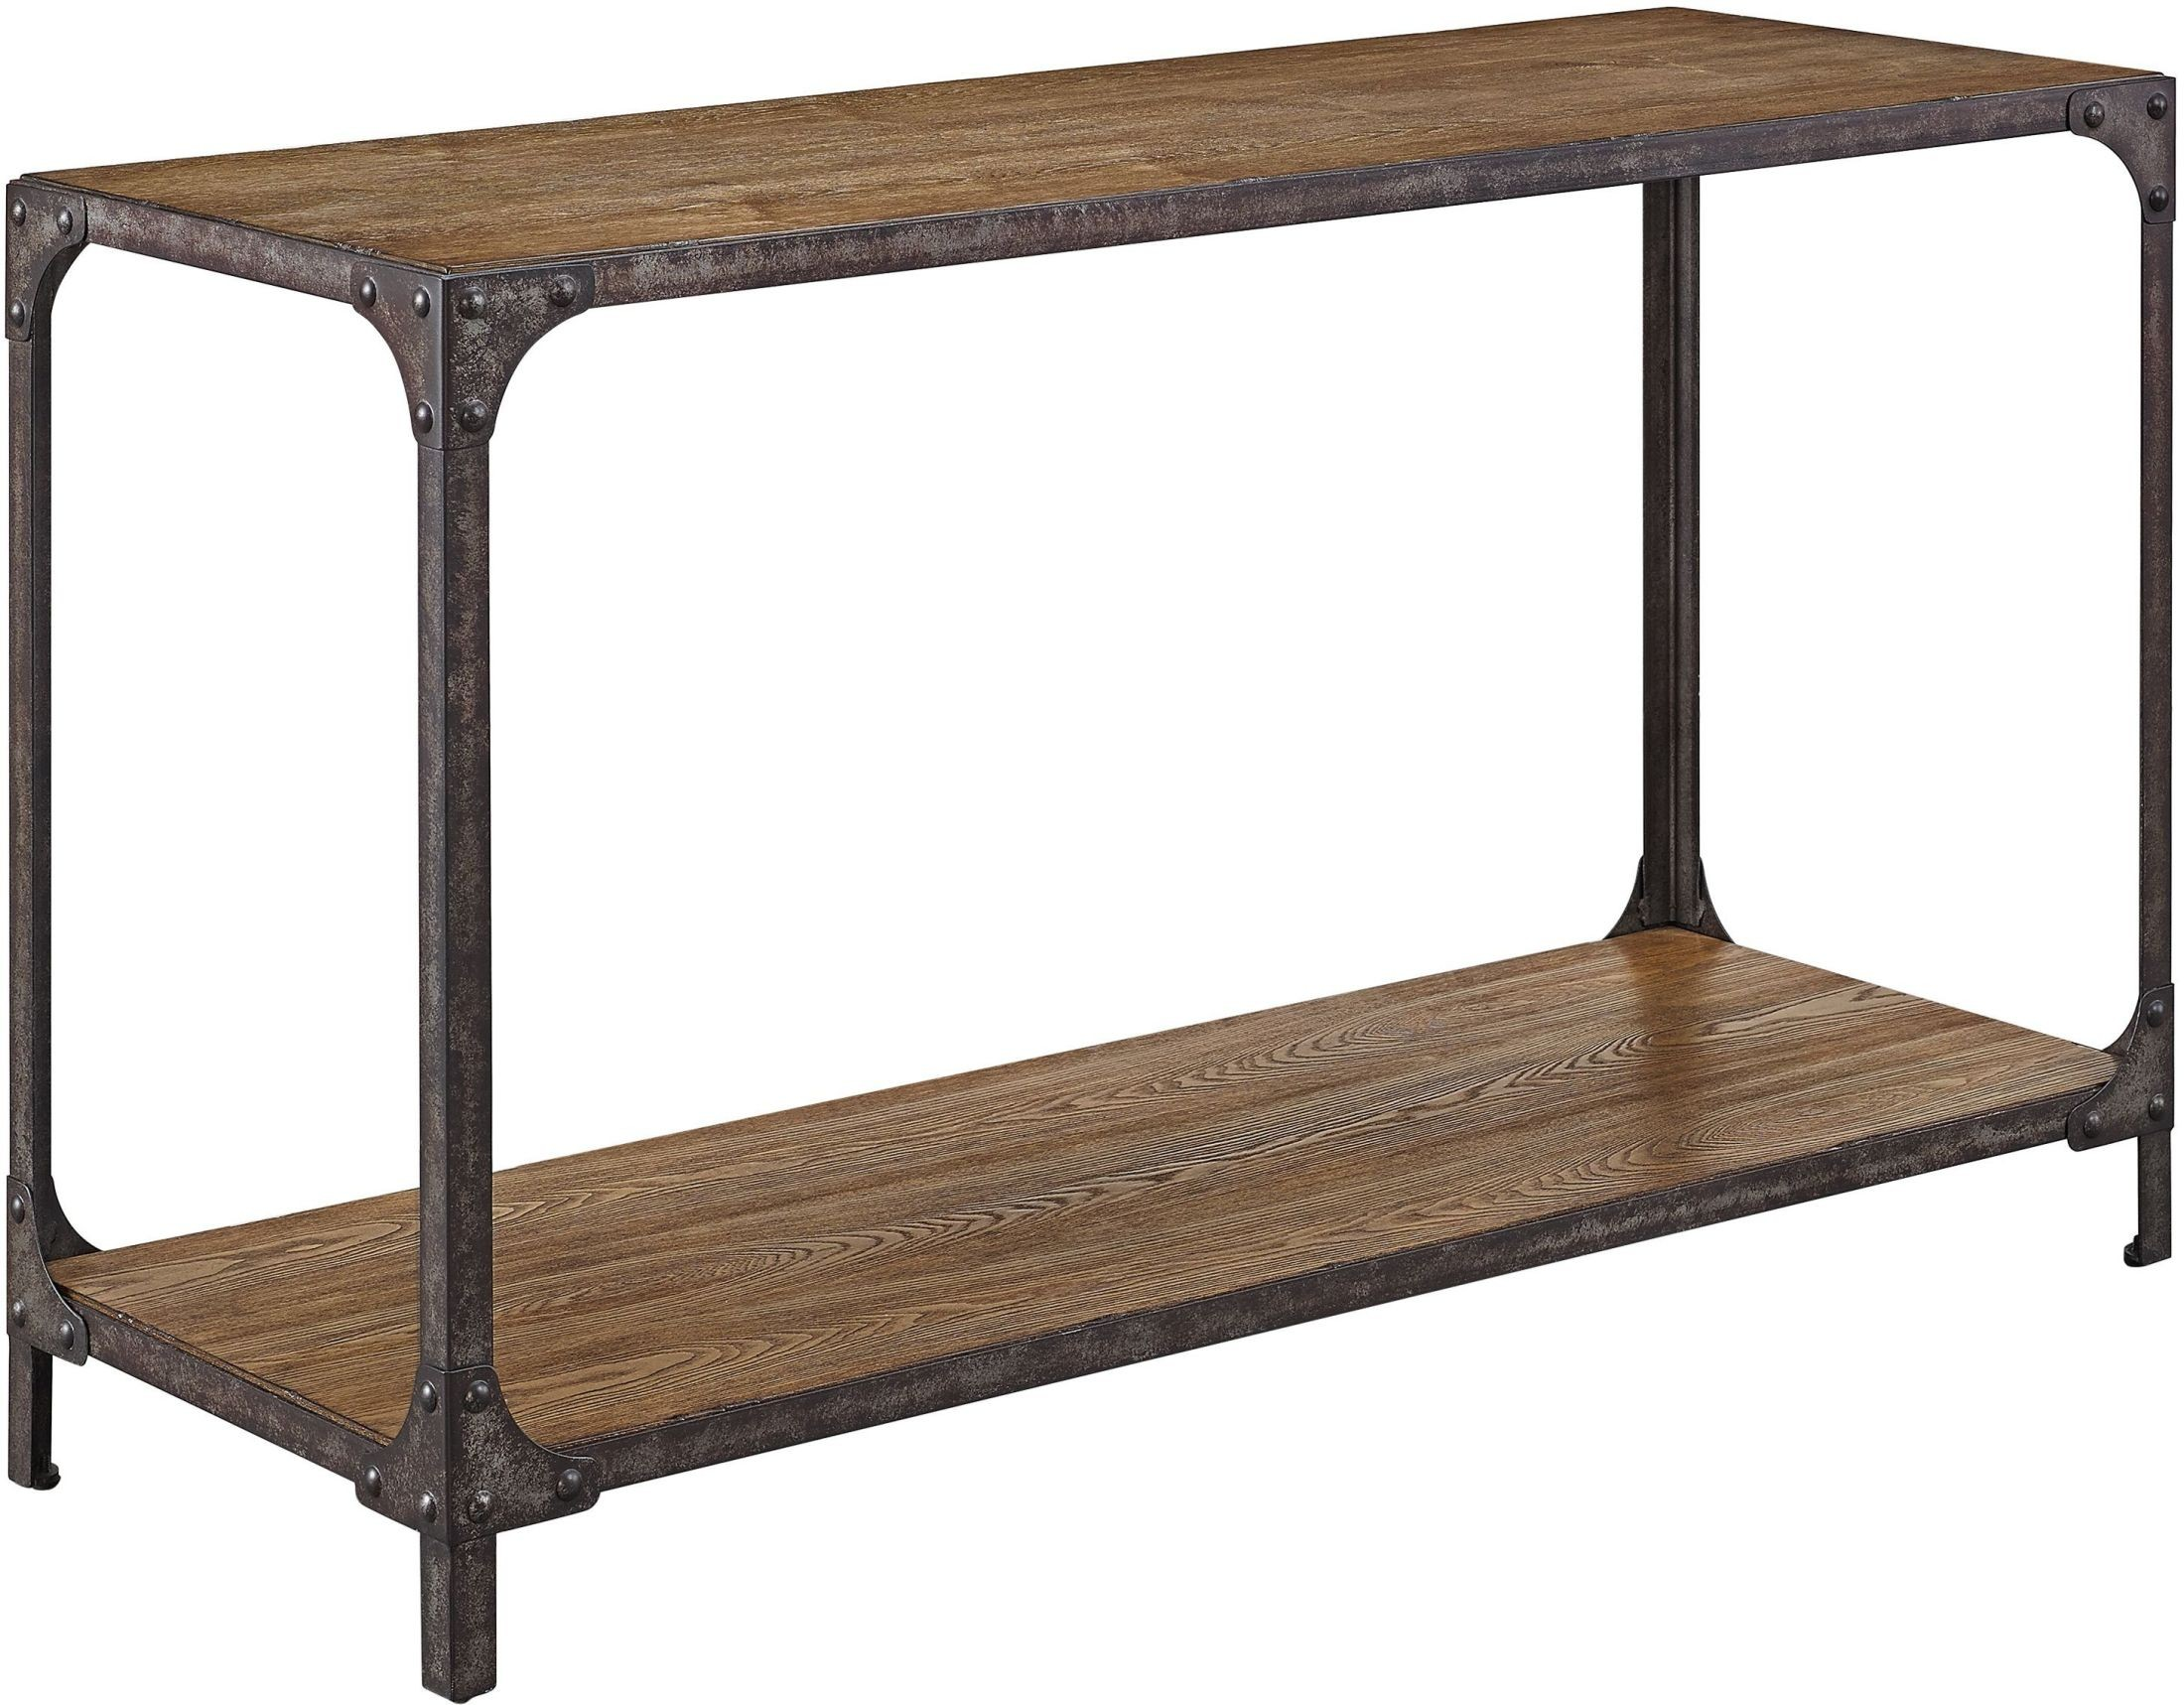 Irwin wood and metal sofa table from pulaski coleman for Metal and wood console tables